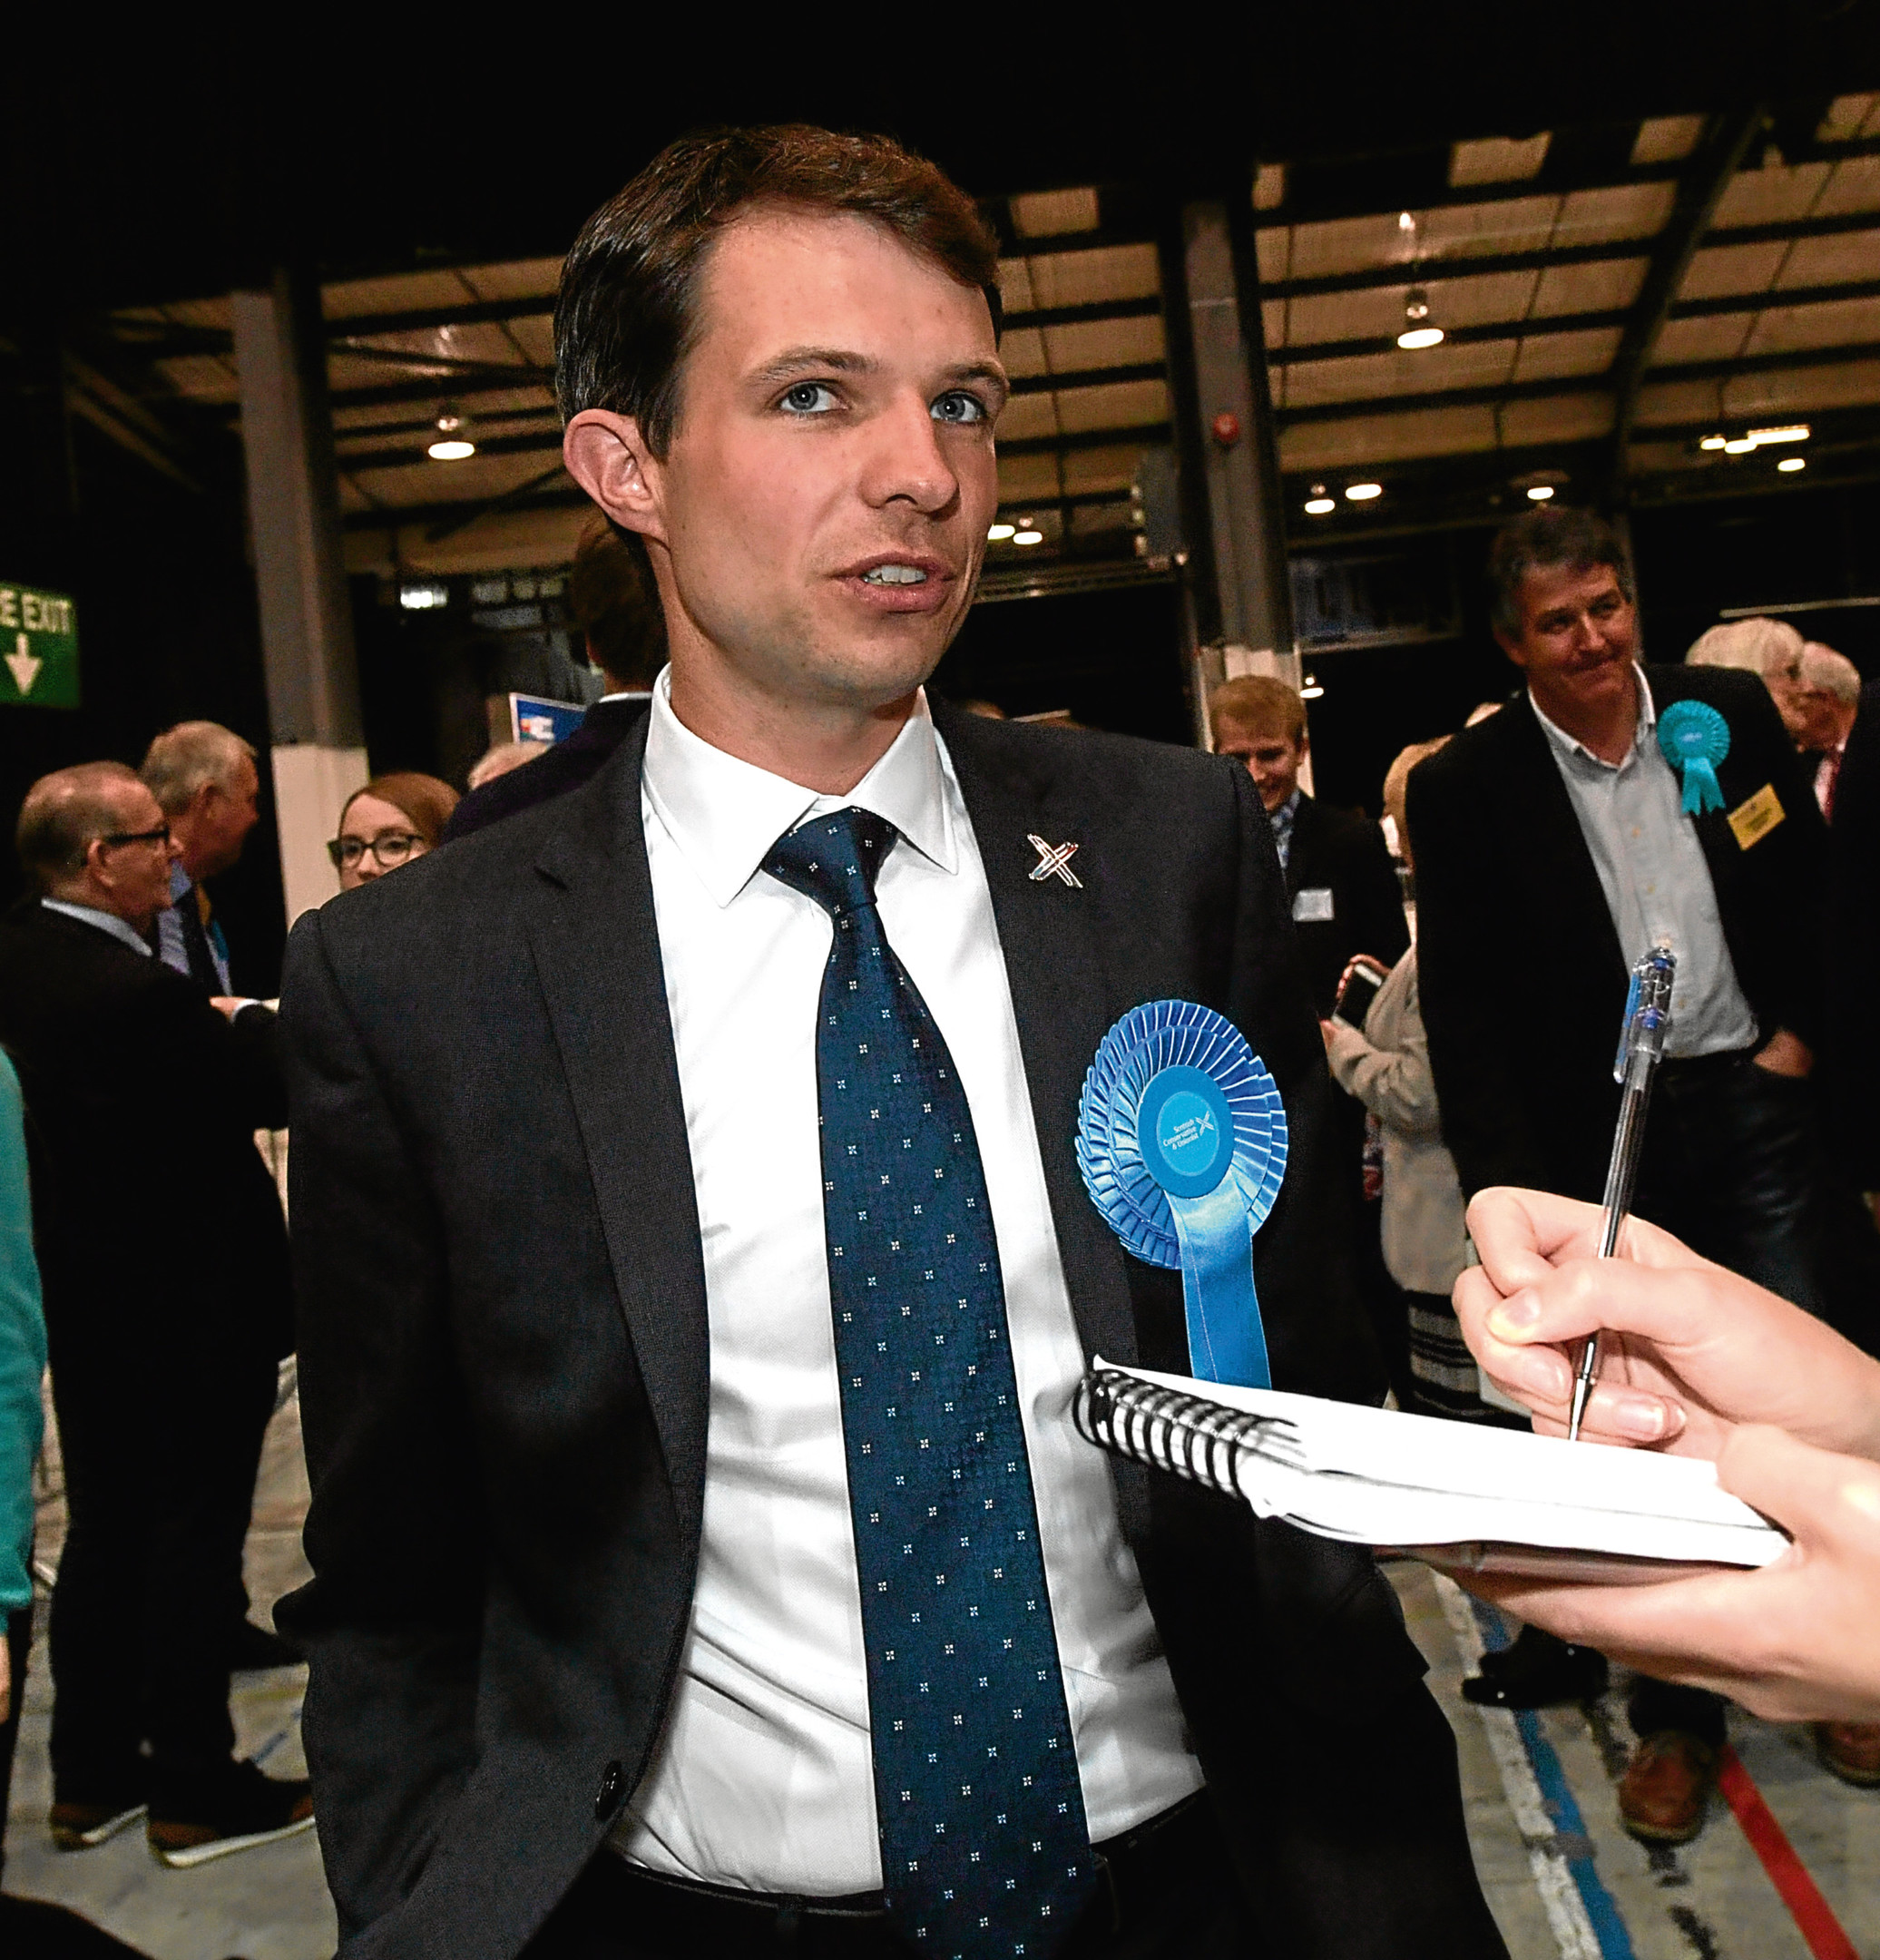 Andrew Bowie. MP for West Aberdeenshire and Kincardine.